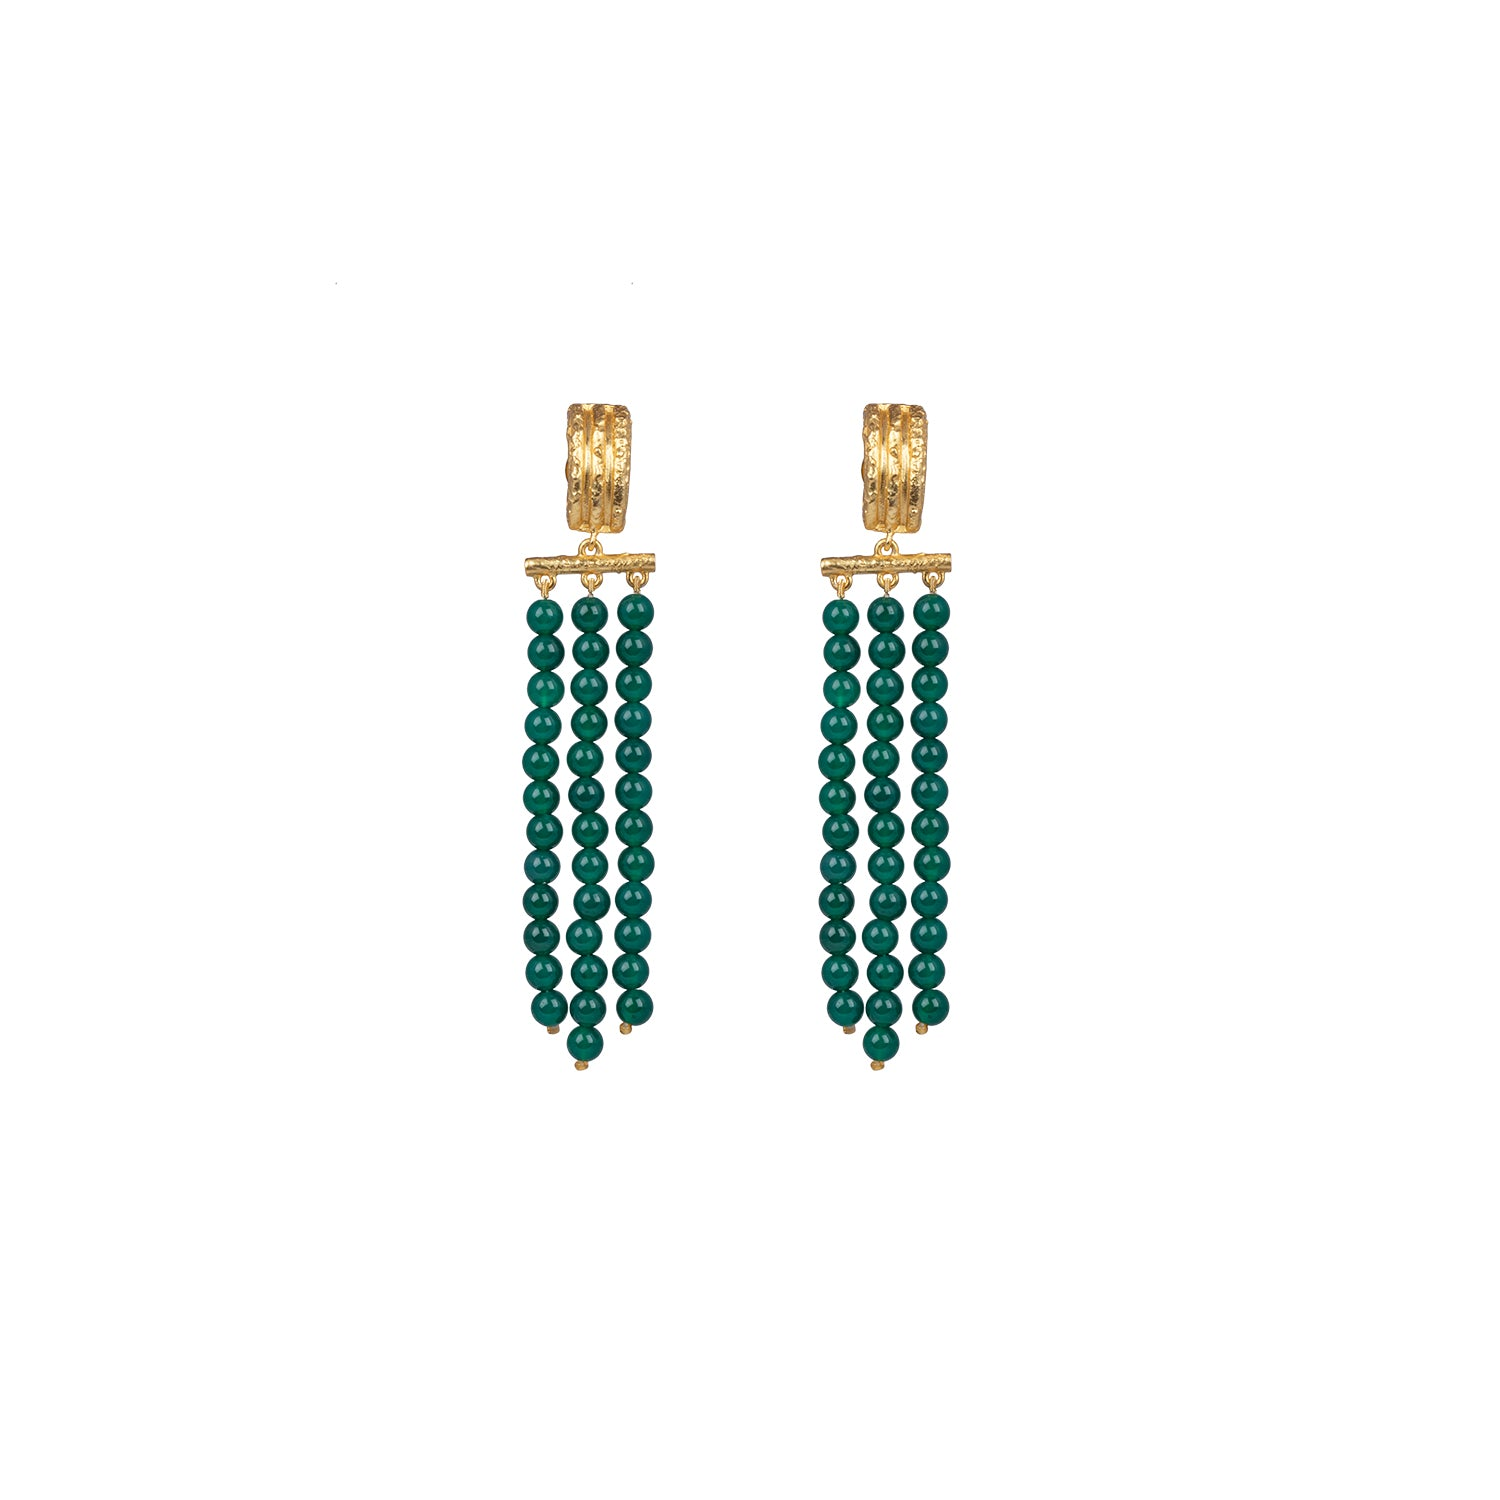 Midori Earrings Dark Green Jade